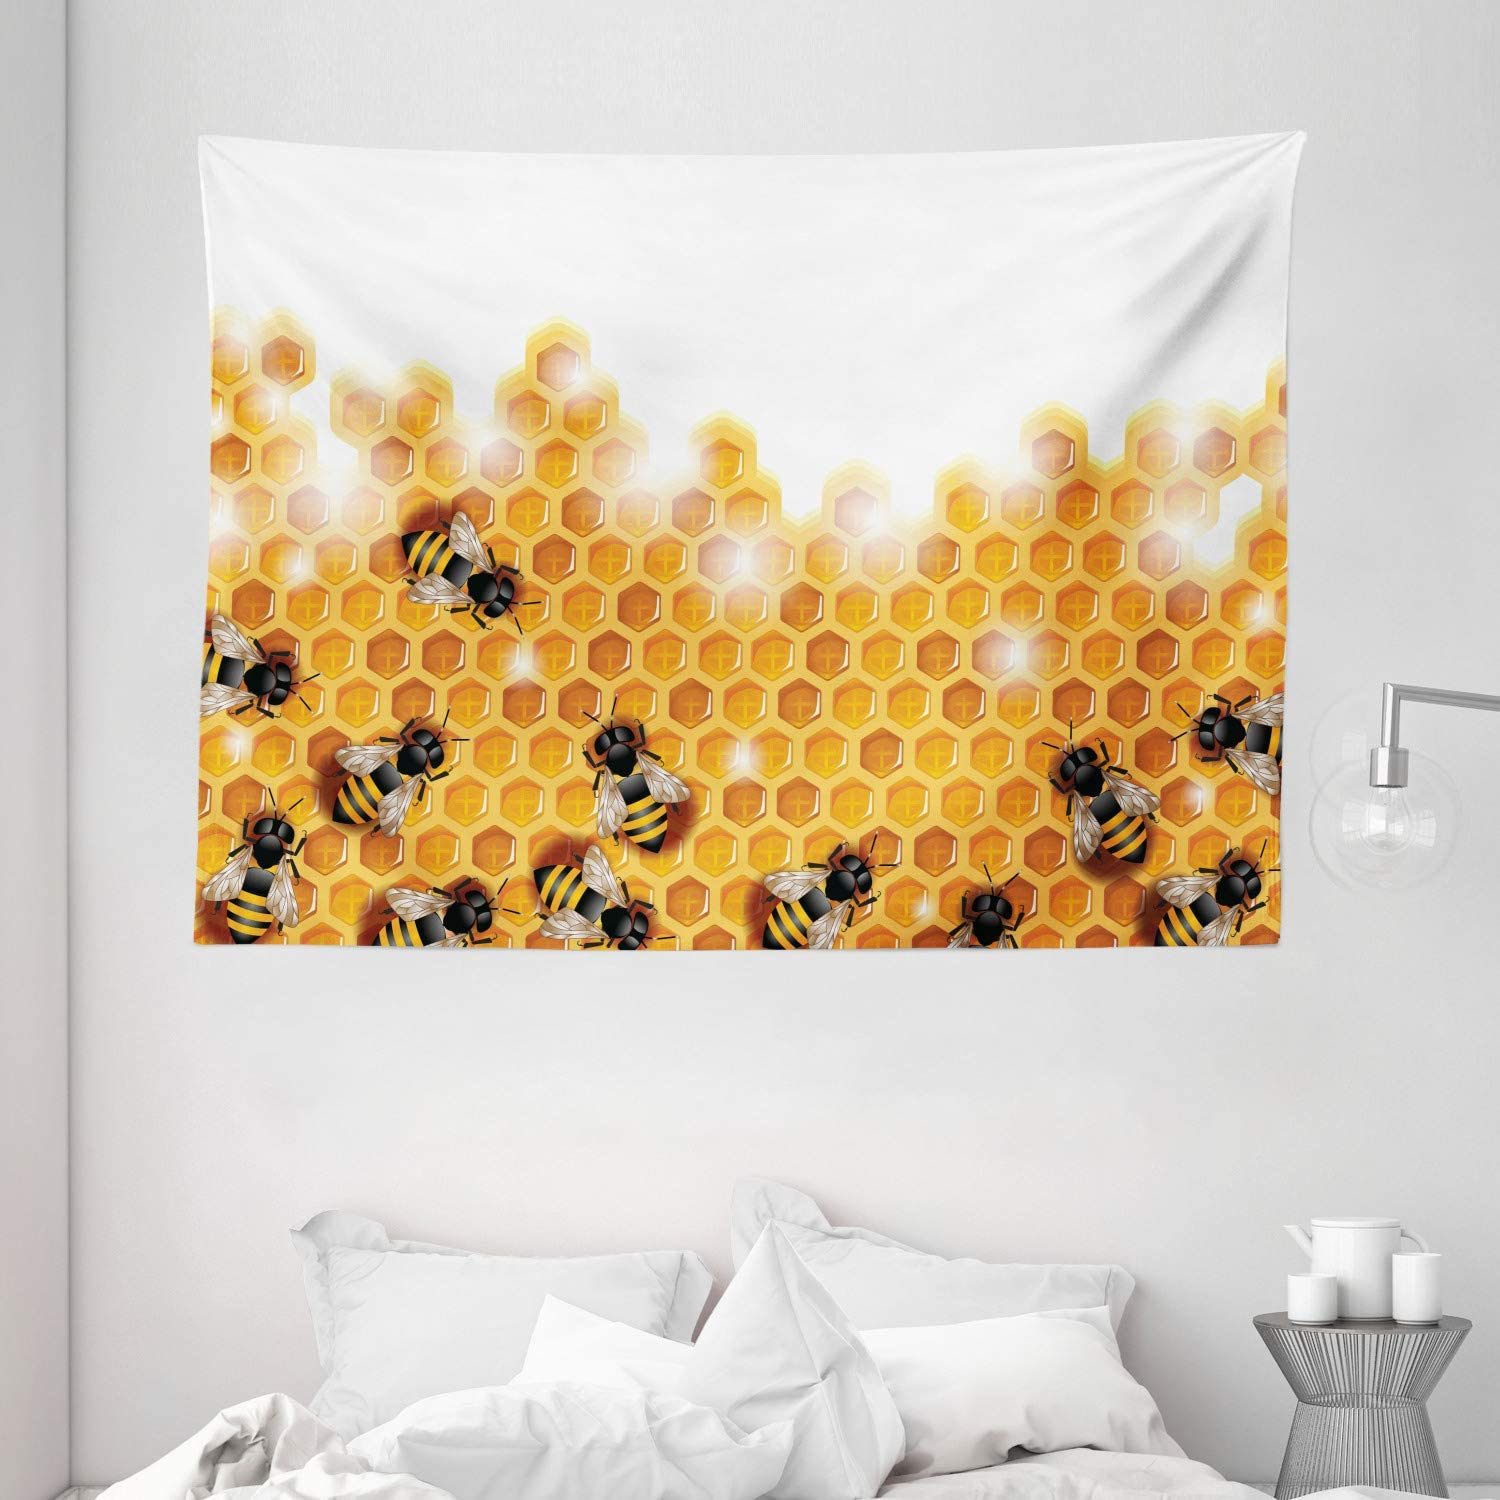 """Ambesonne Nature Tapestry, Honey Bees Wax Abstract Insect of Spring Season Artwork Image, Wide Wall Hanging for Bedroom Living Room Dorm, 80"""" X 60"""", Marigold Apricot"""